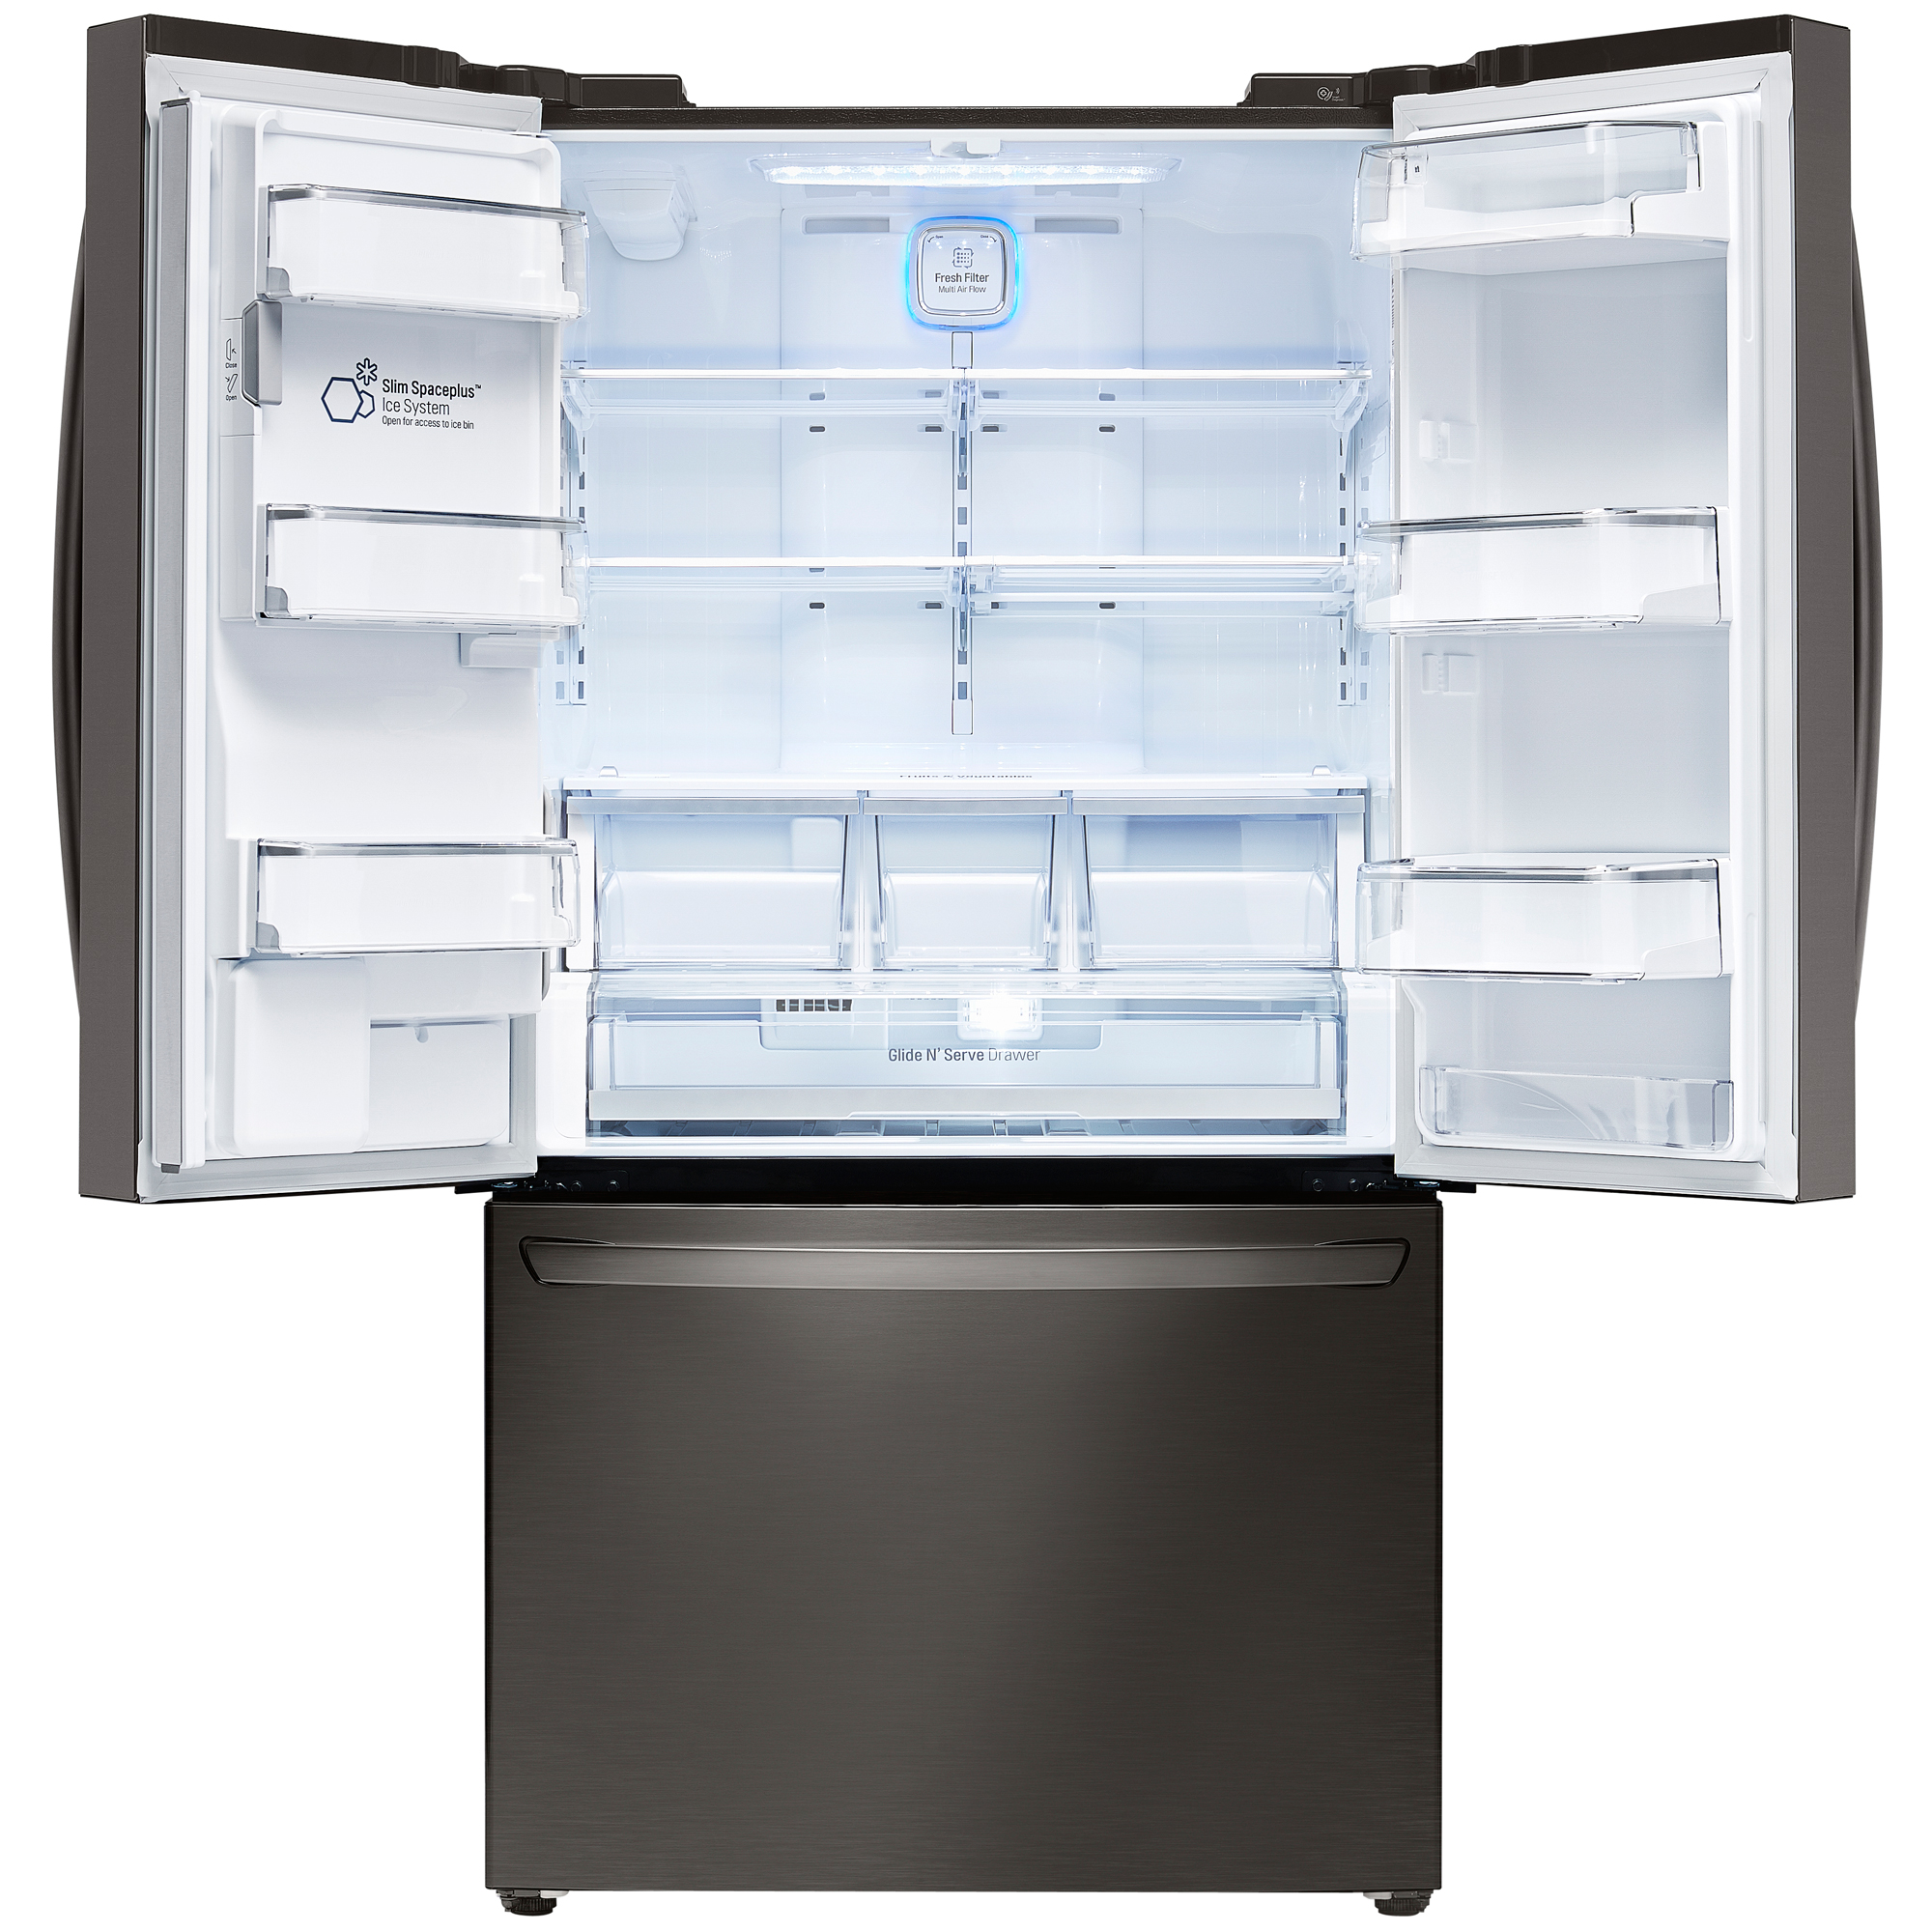 LG LFXC24726D 23.7 cu. ft. Counter-Depth French Door Refrigerator w/Smart Cooling Plus - Black Stainless